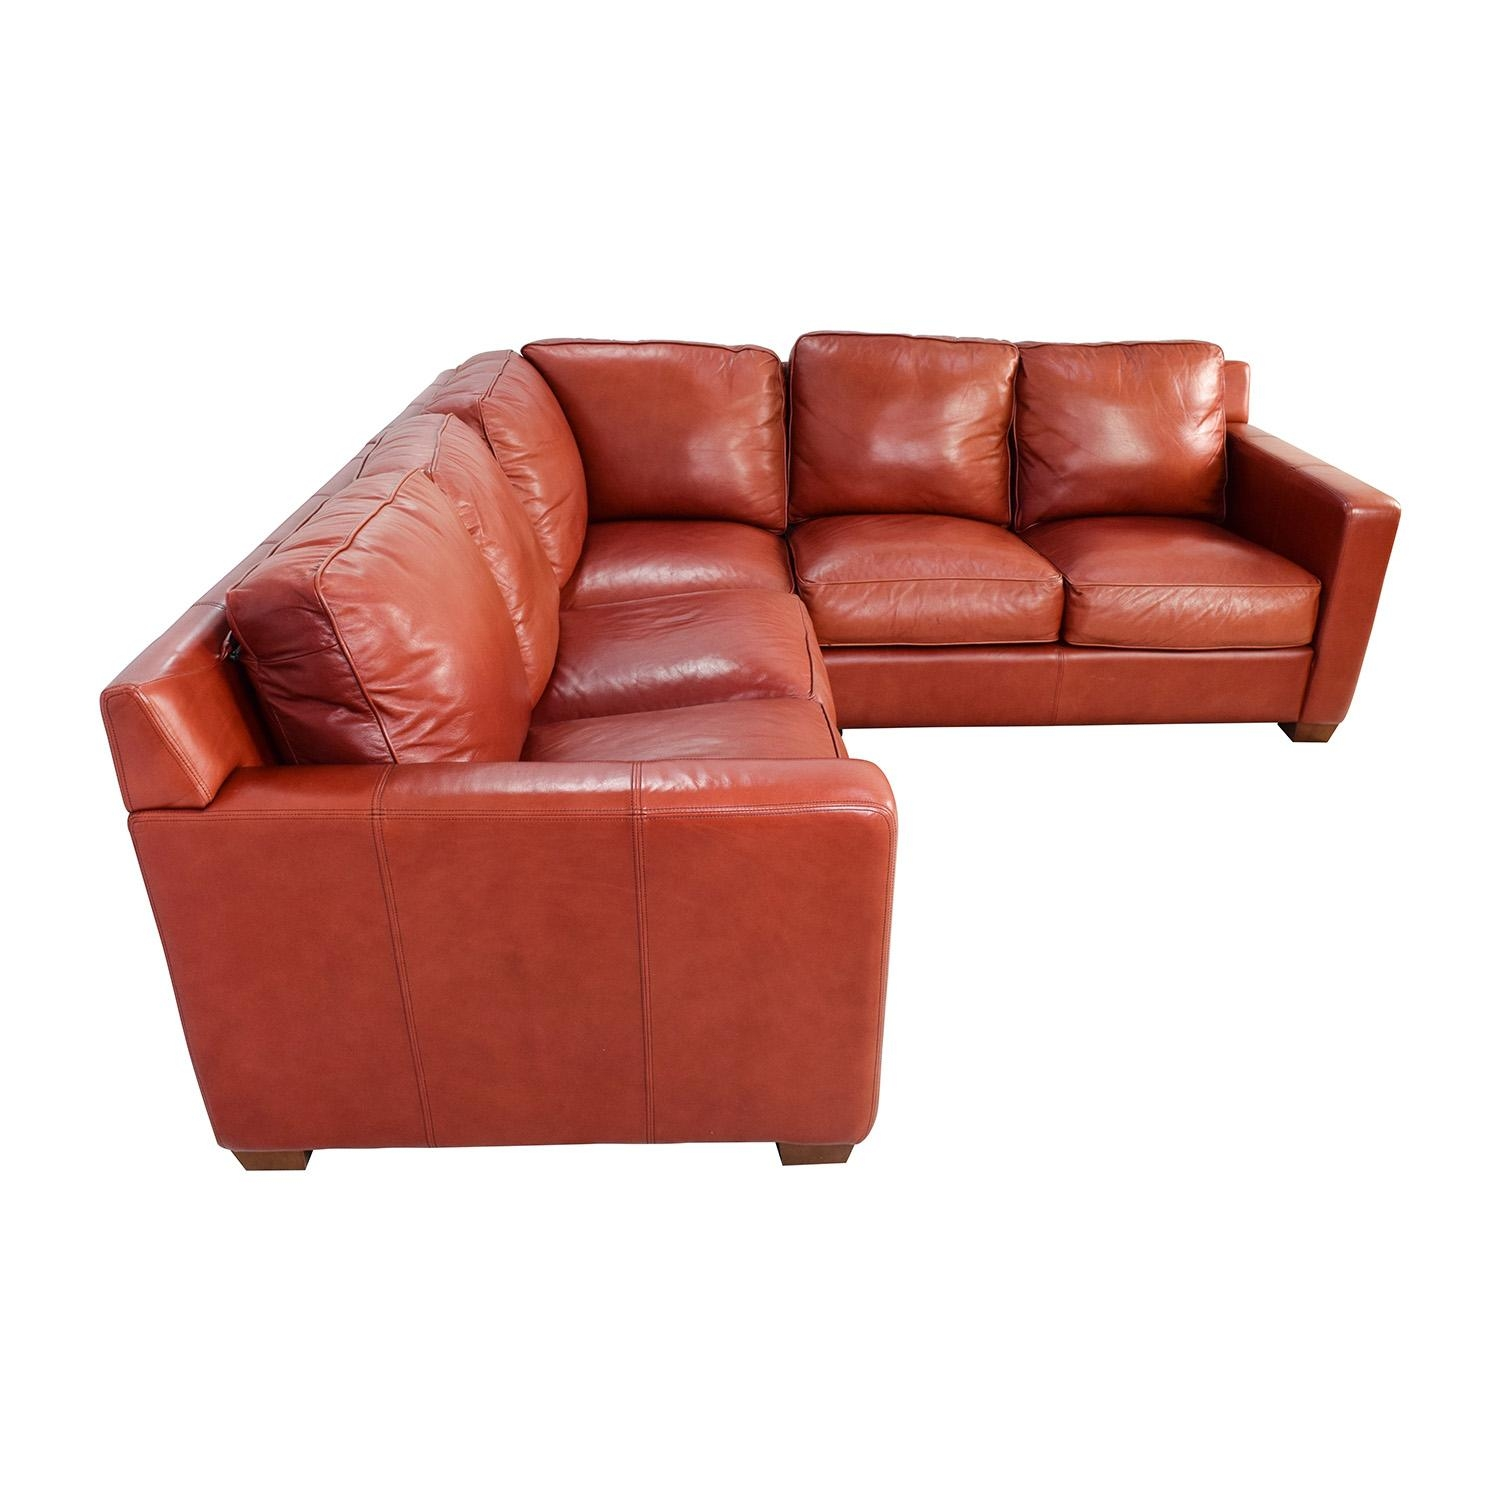 68% Off - Thomasville Thomasville Red Leather Sectional / Sofas regarding Thomasville Leather Sectionals